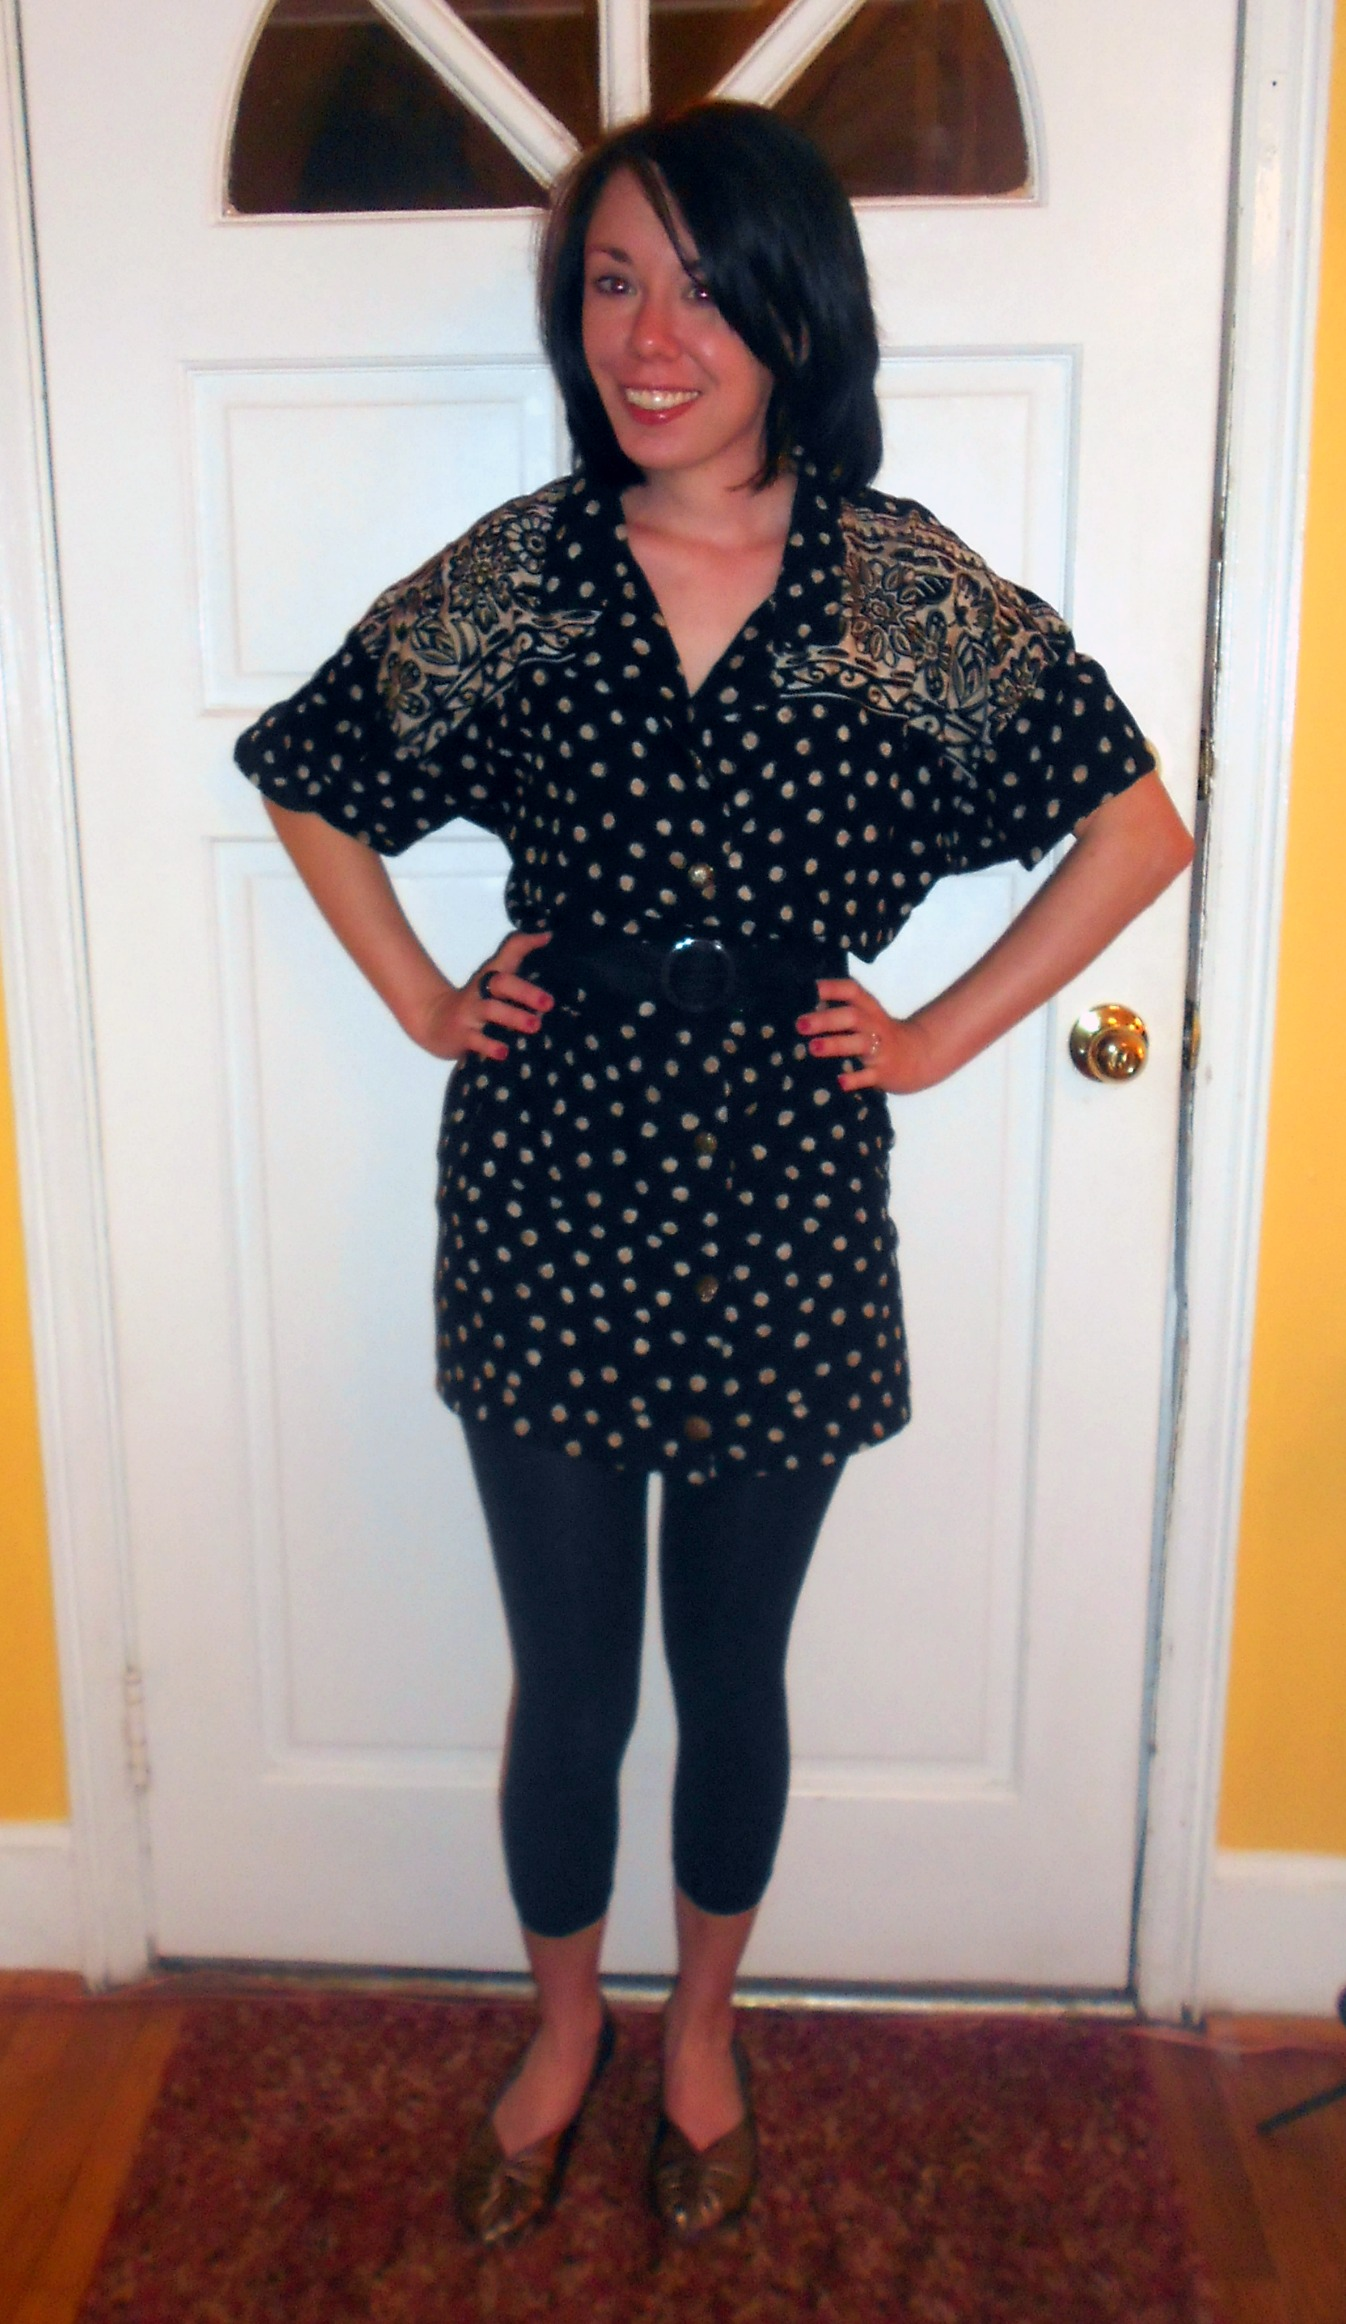 Day 235: Out of the Dark Dress 7